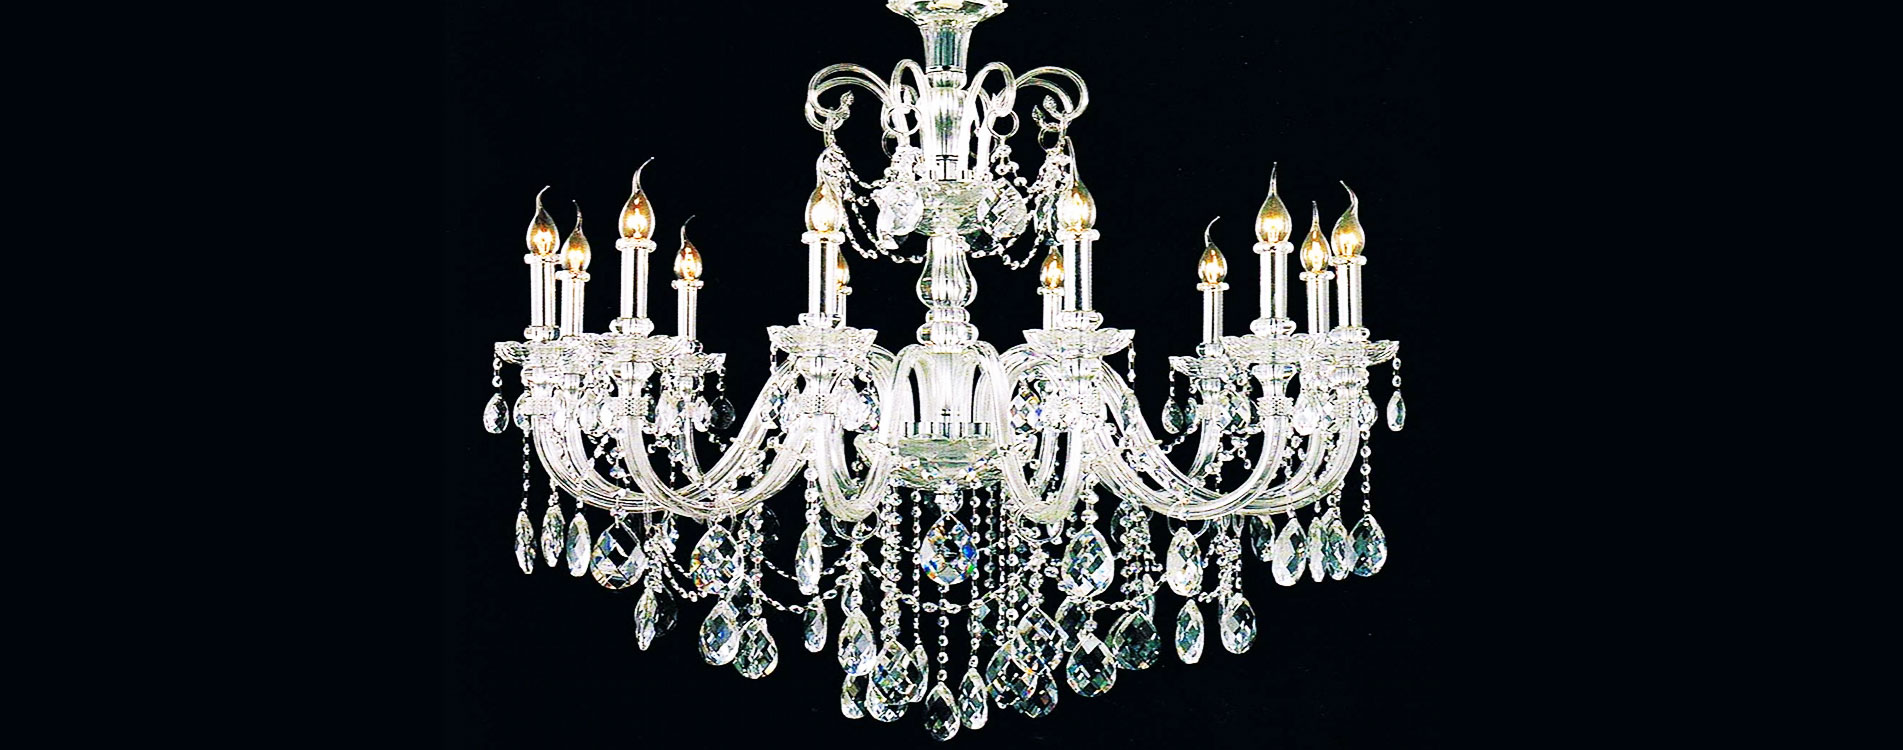 Chandelier room the chandelier room arubaitofo Image collections